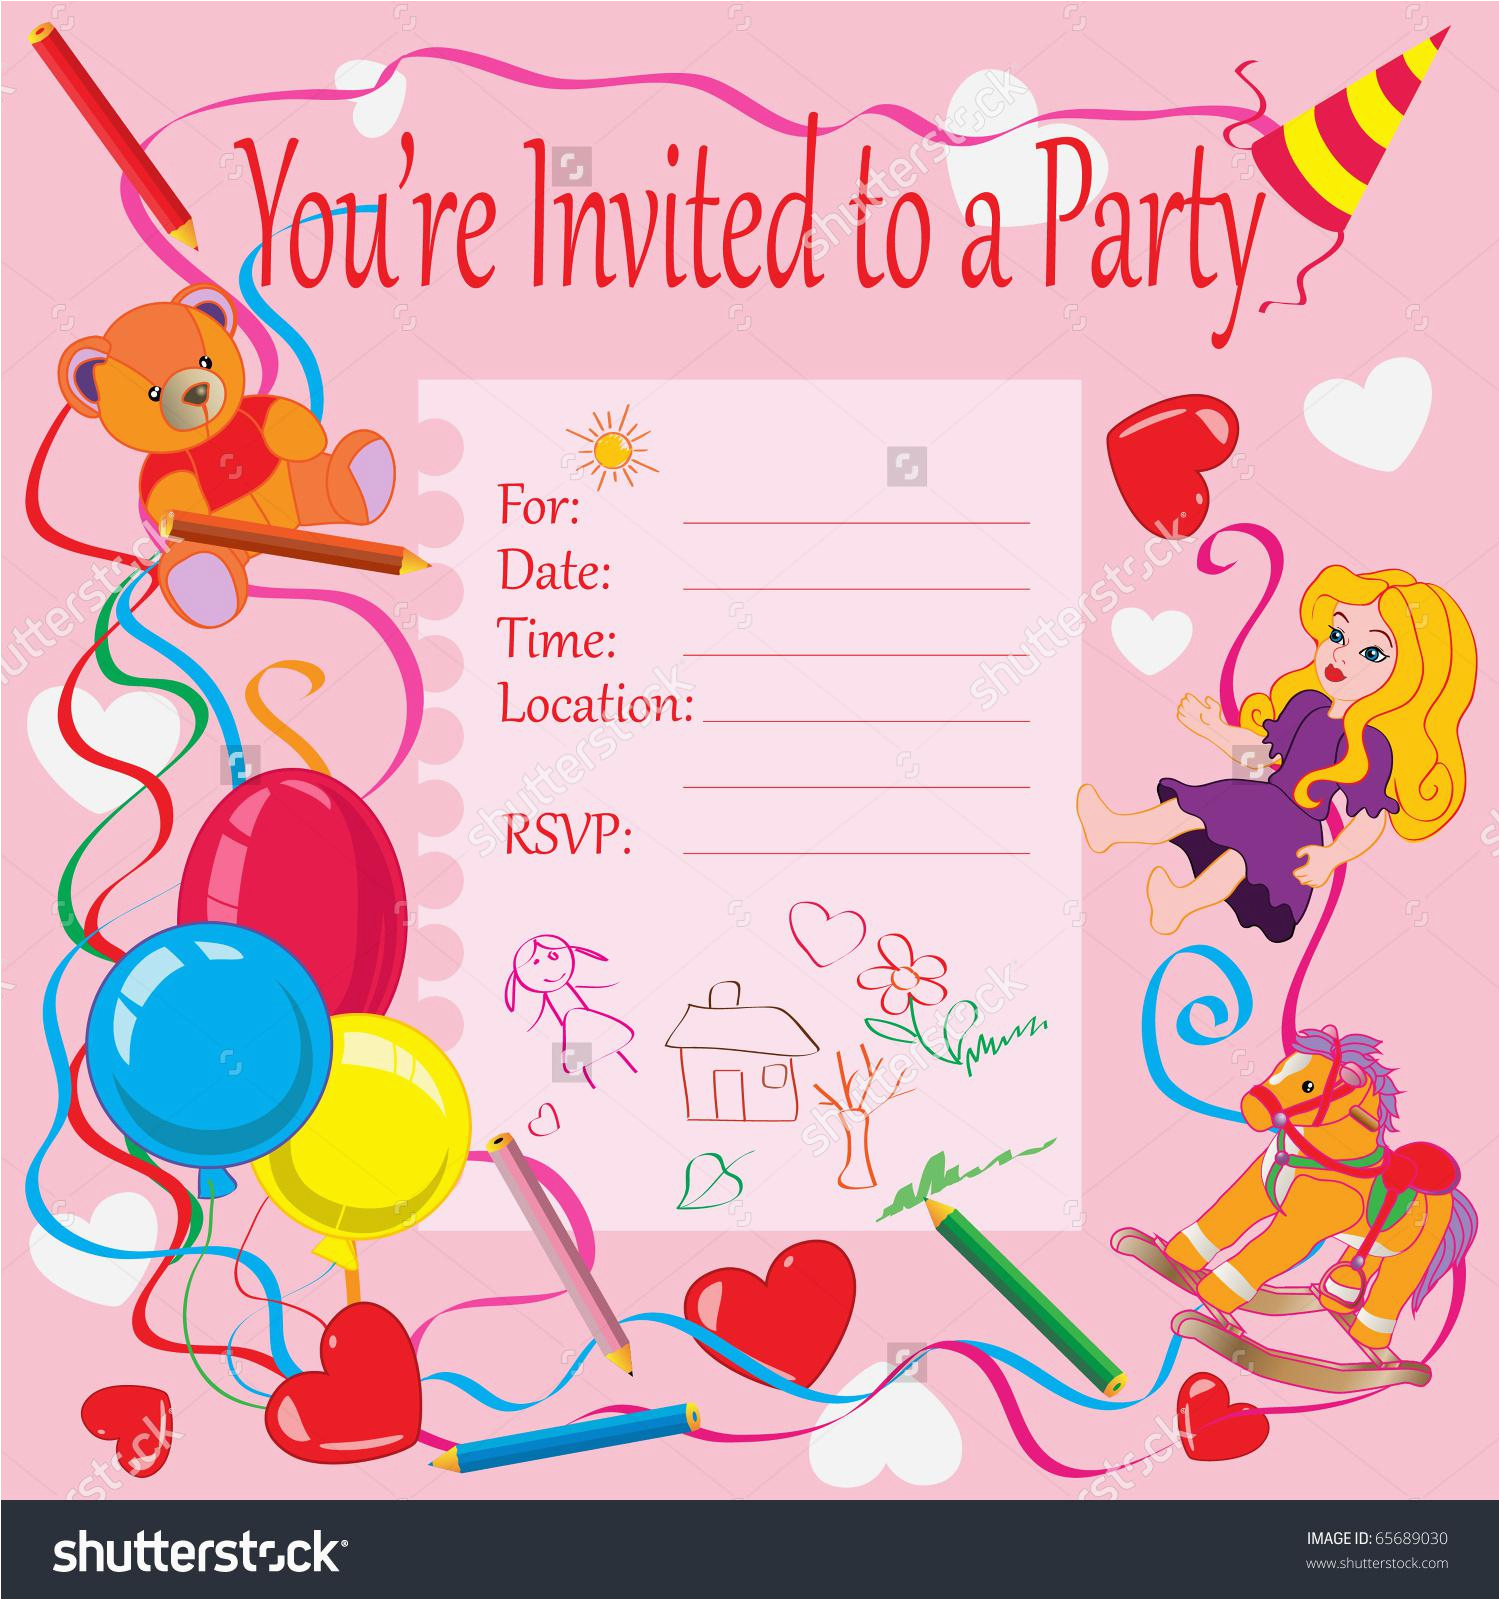 Inviting Cards For A Birthday 4 Step Make Your Own Invitations Free Sample